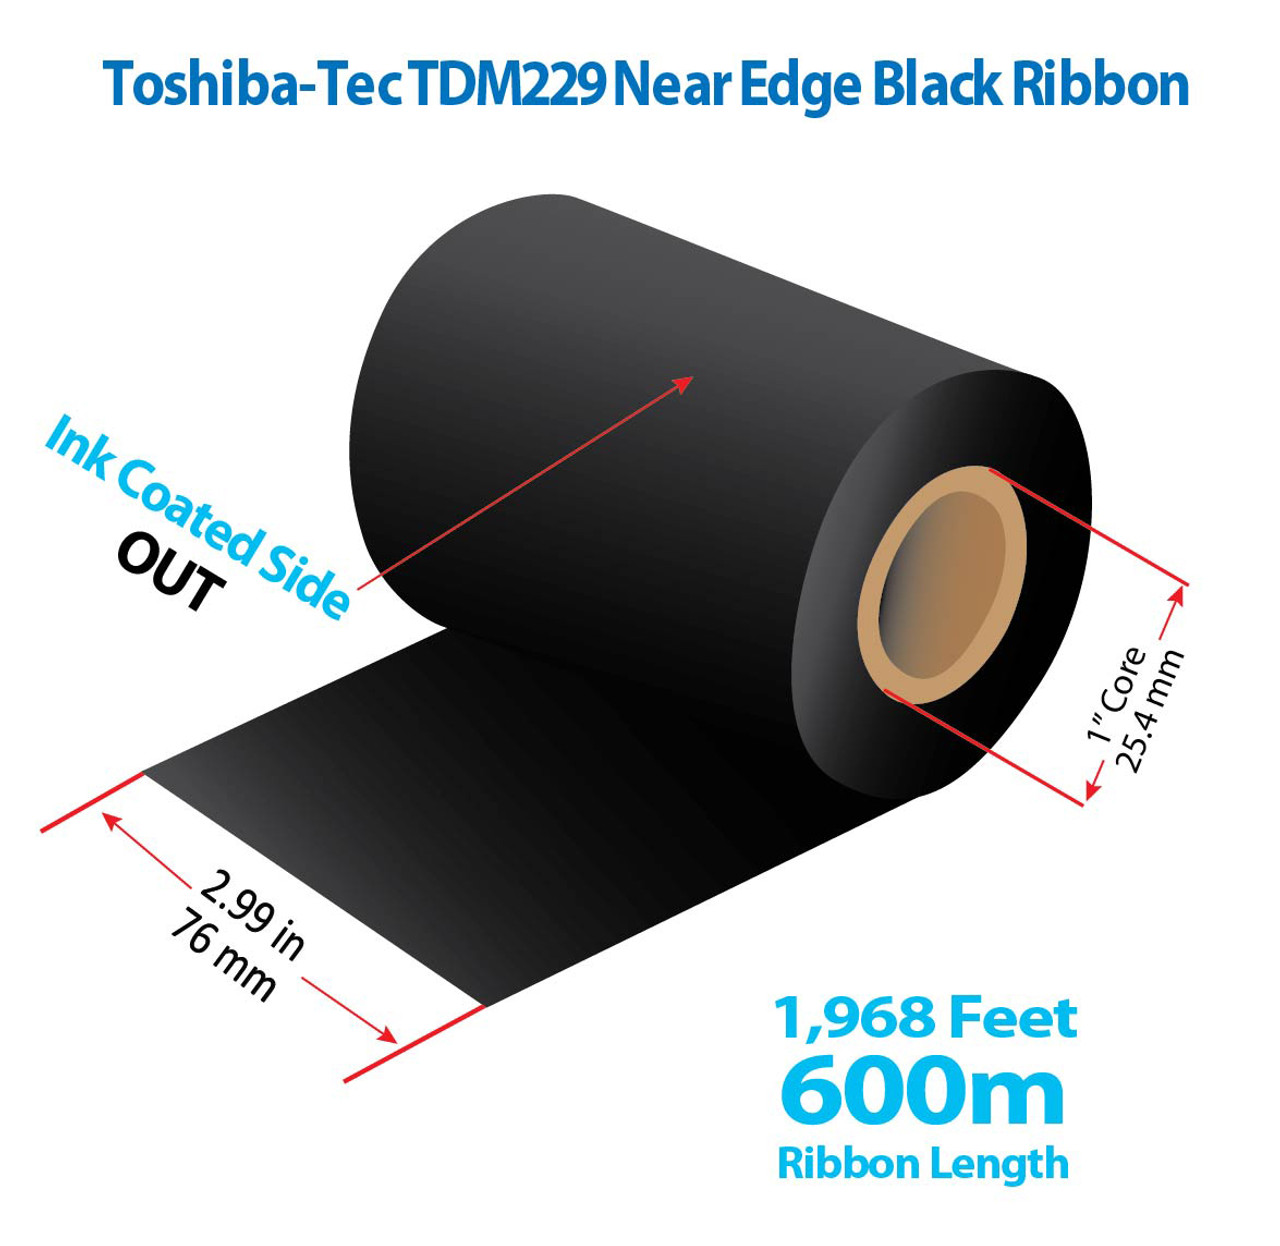 "Toshiba-Tec 2.99"" x 1968 Ft TDM229 Near Edge Wax/Resin Ribbon with INK OUT 